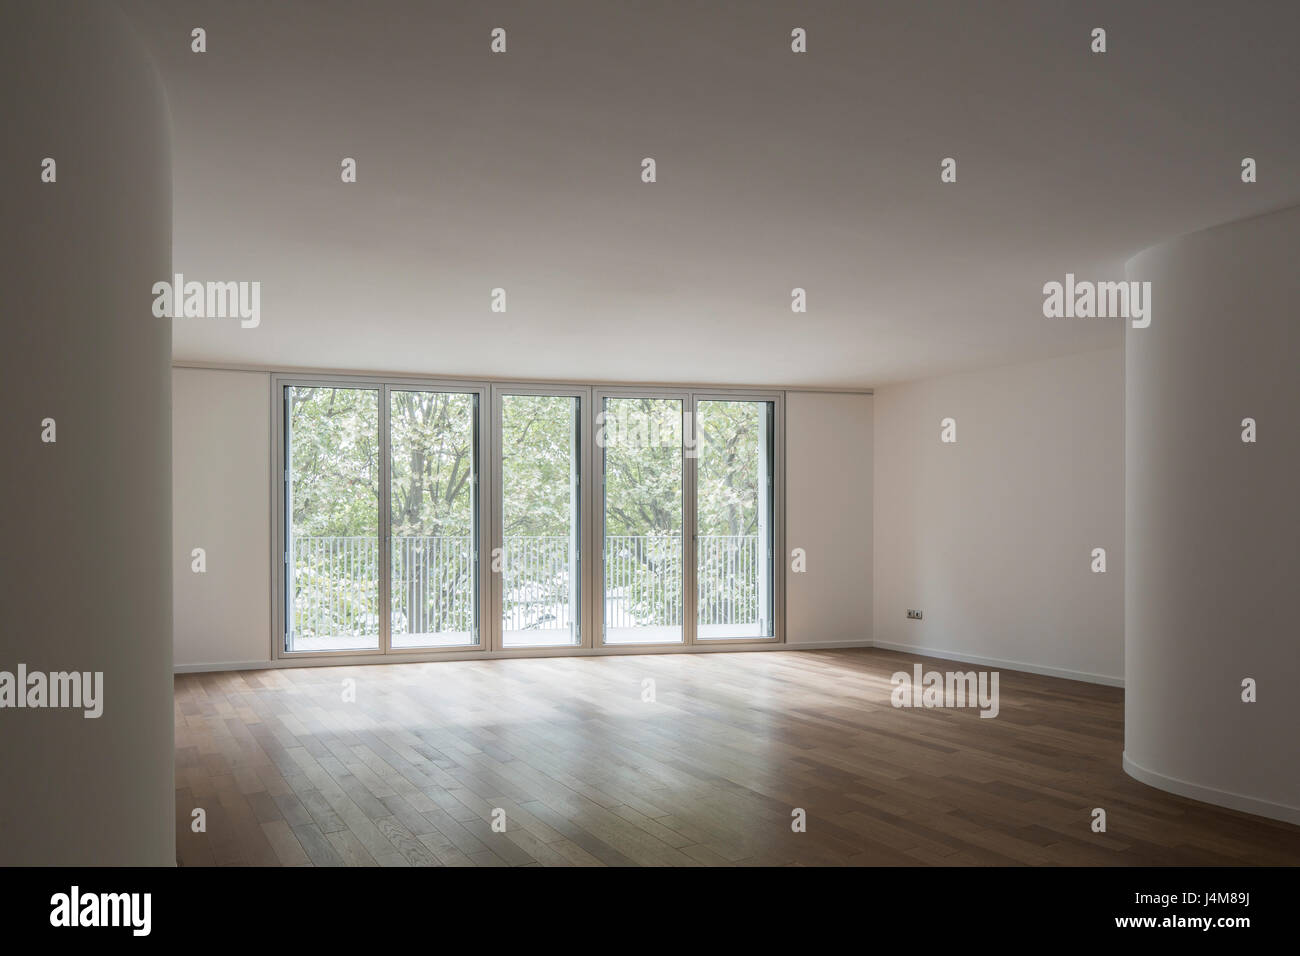 Unfurnished building interior with fenestration and balconies. Housing Building, Quai Henri IV, Paris, France. Architect: - Stock Image